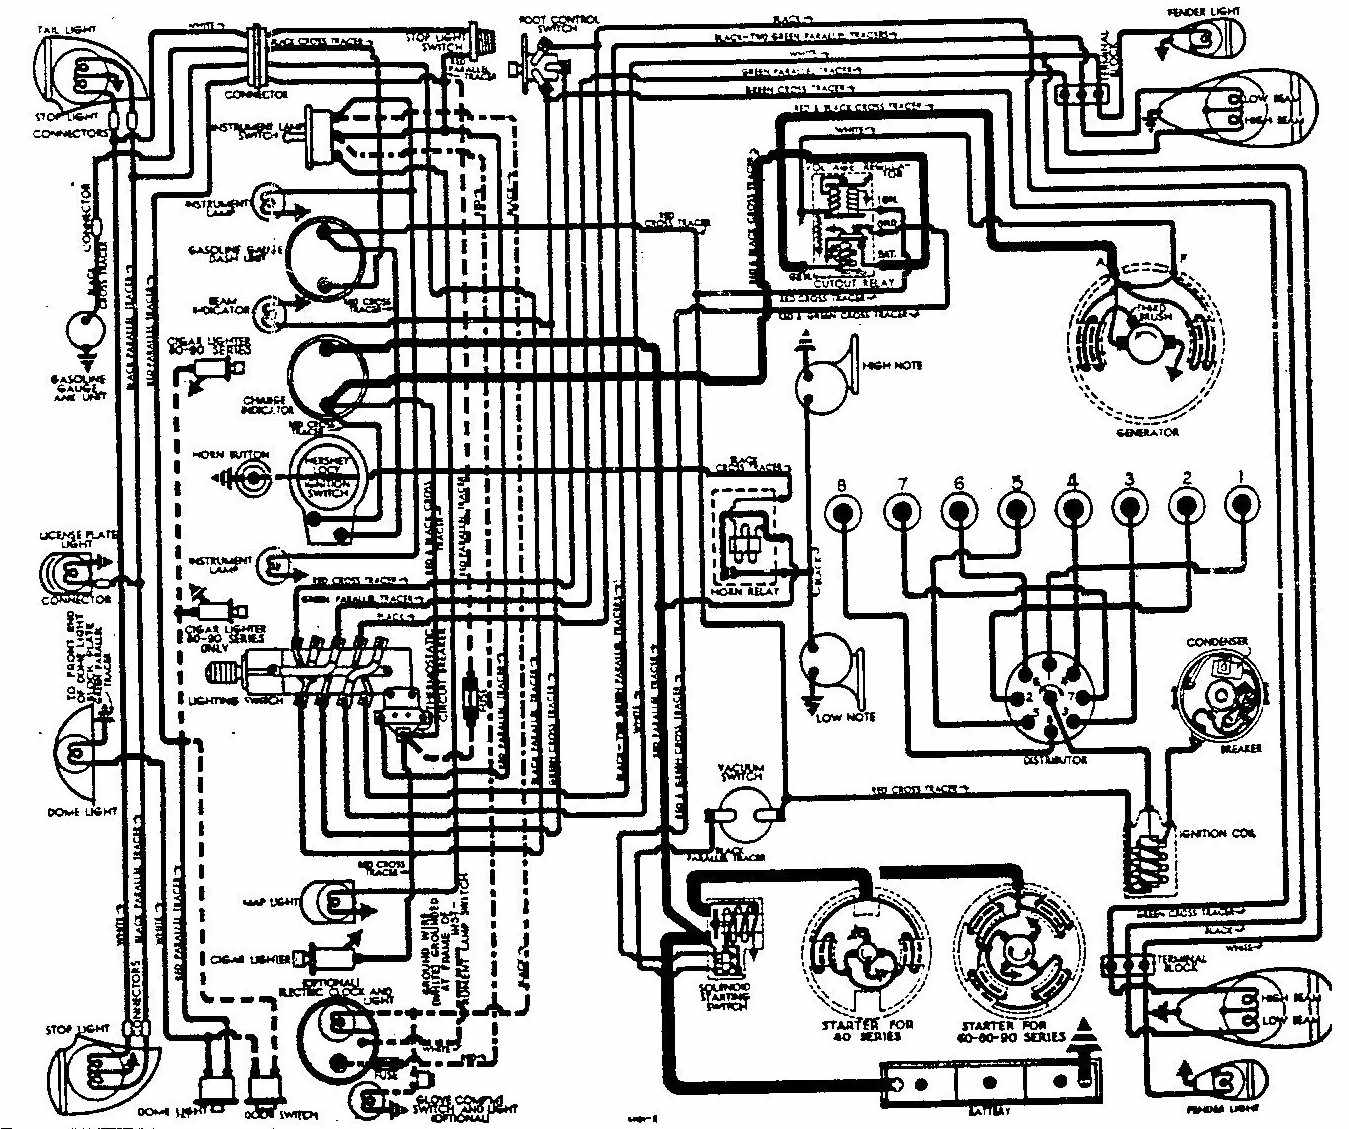 Buick+Roadmaster+1938+Electrical+Wiring+Diagram new holland 3930 wiring diagram wiring diagram simonand  at soozxer.org